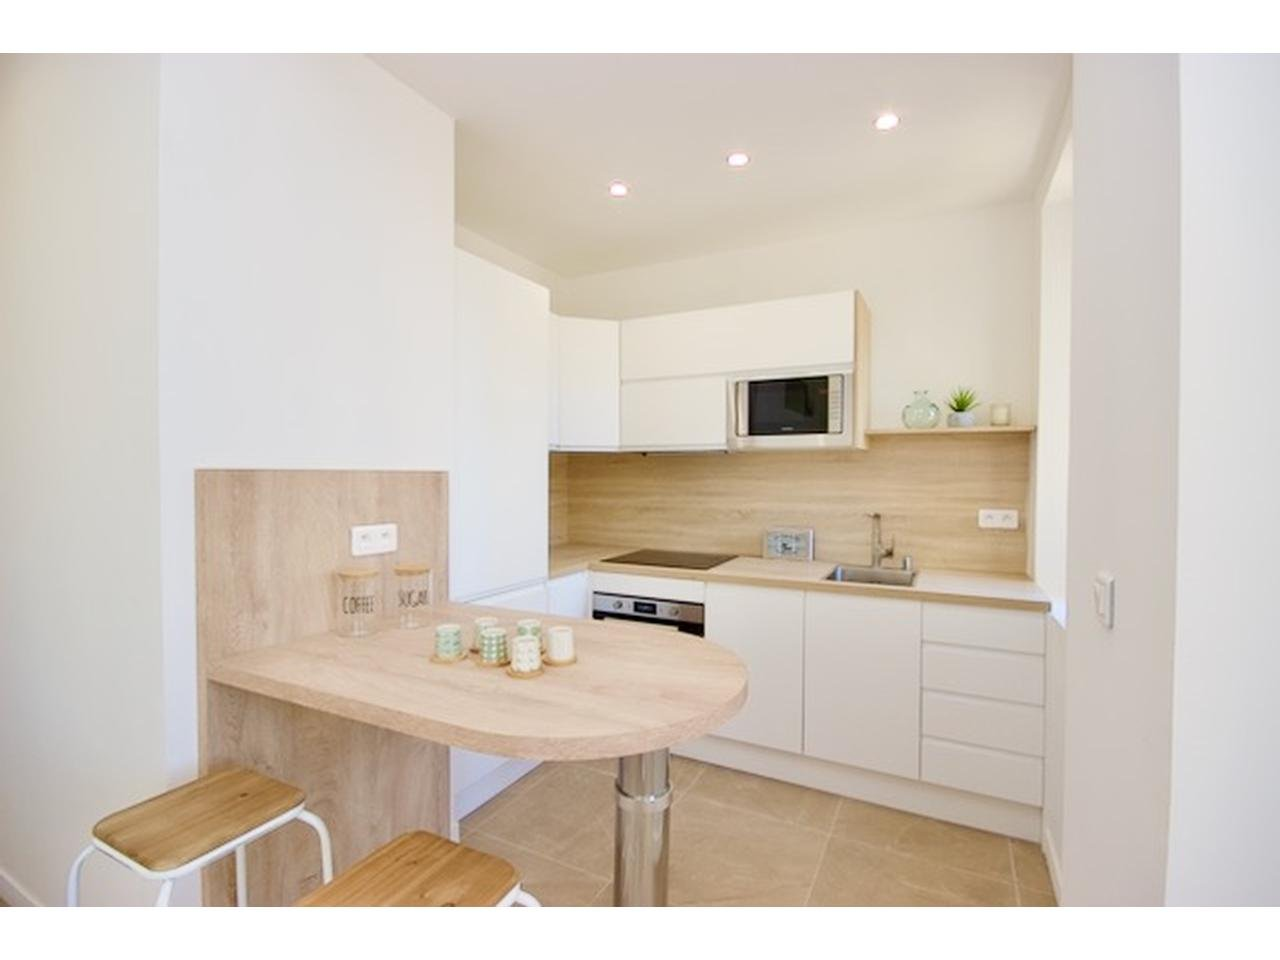 Appartement  3 Rooms 54.1m2  for sale   445000 €